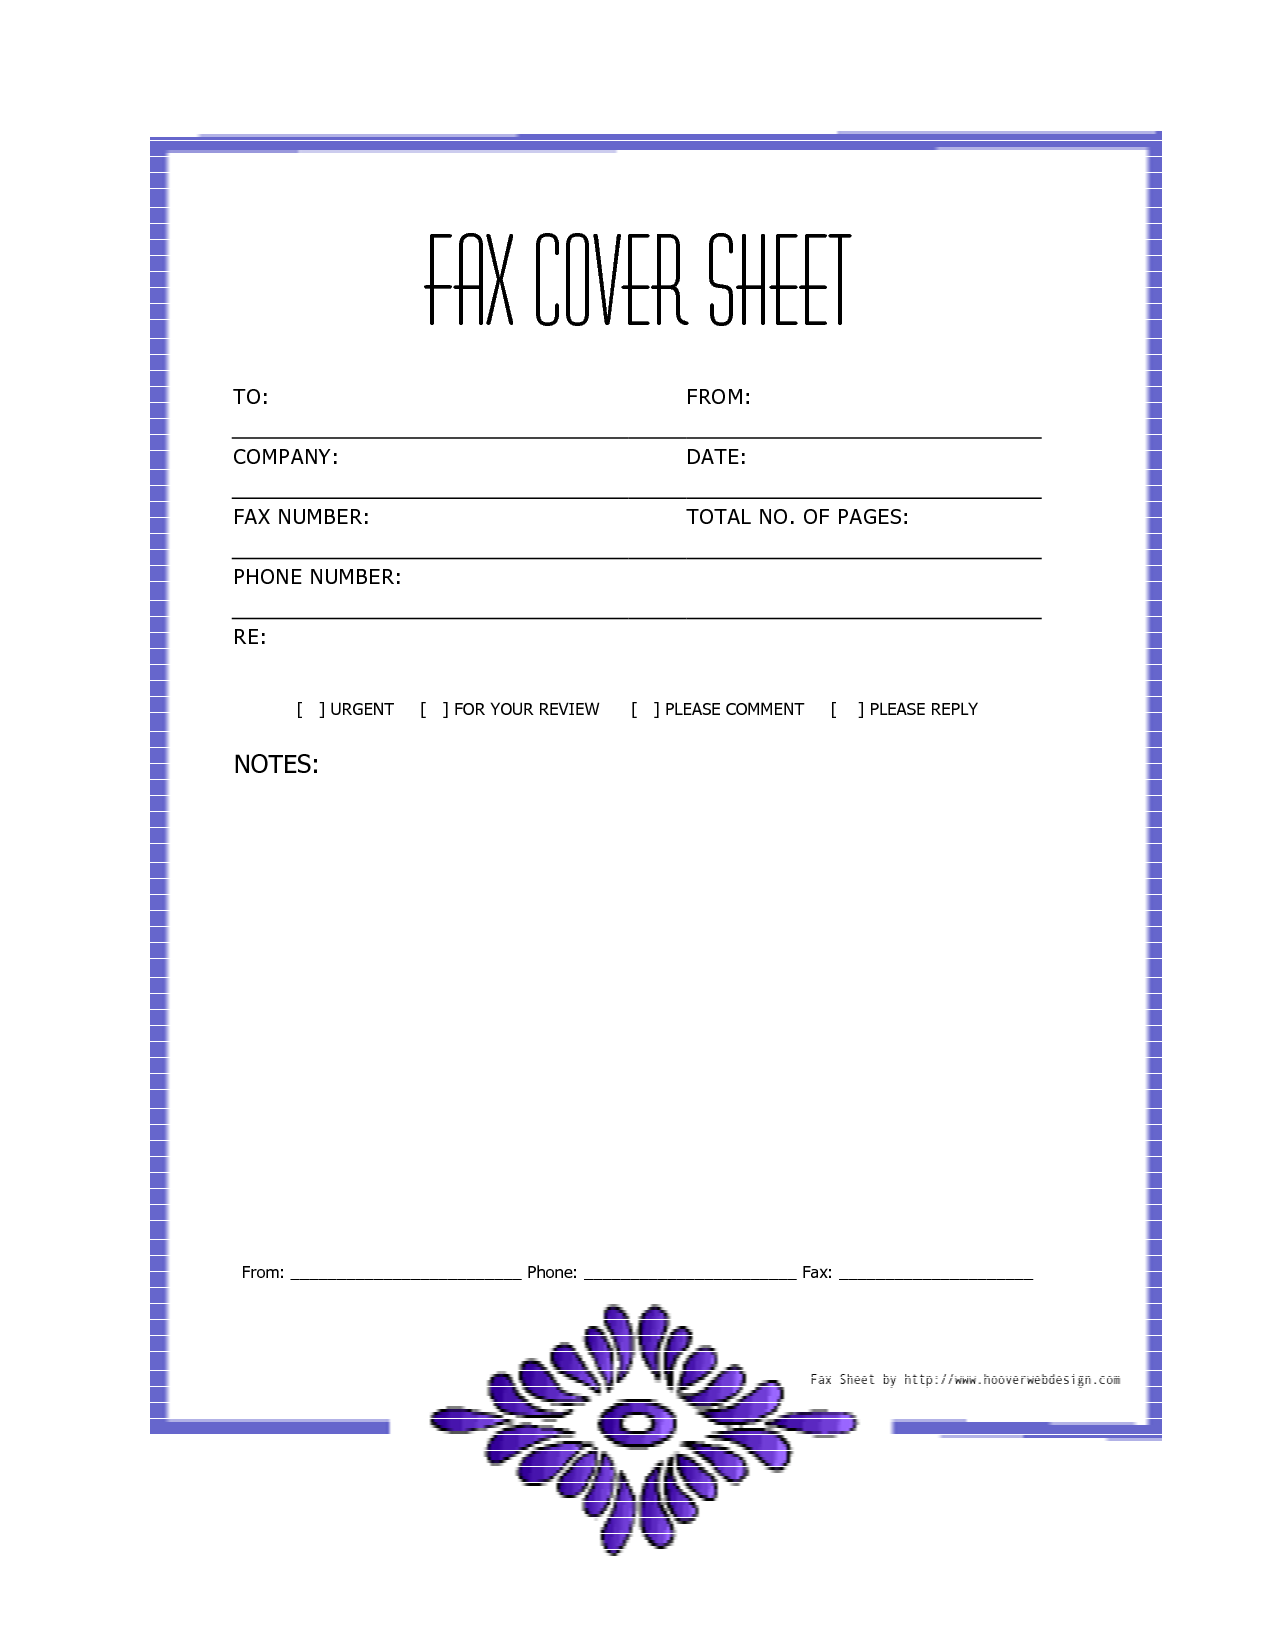 fax cover sheet example httpcalendarprintablehubcomfax cover - Examples Of Fax Cover Letters